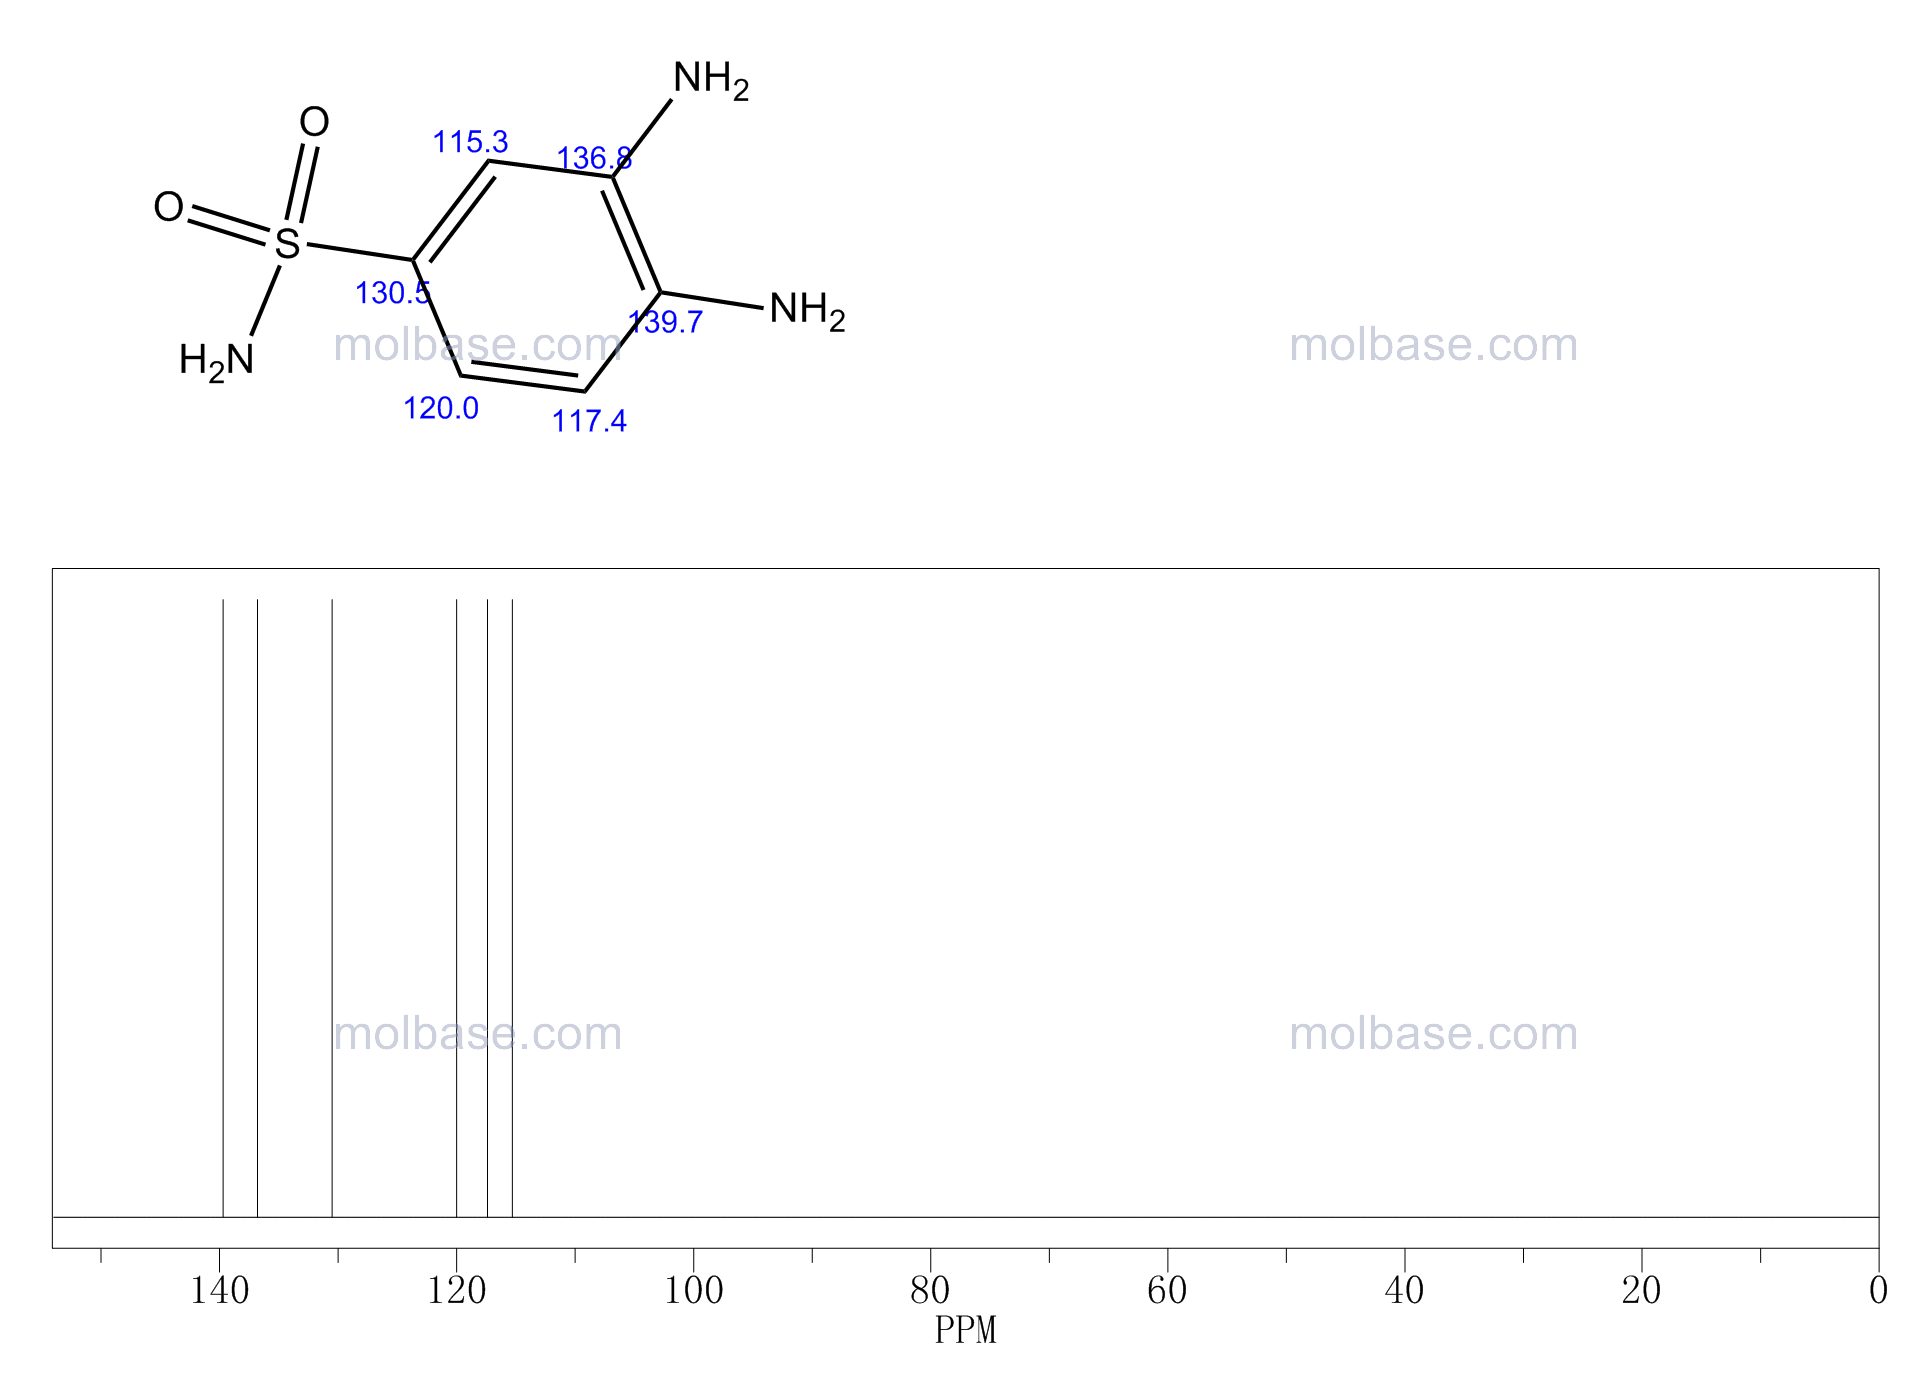 3,4-diaminobenzenesulfonamide NMR spectra analysis, Chemical CAS NO. 2360-20-5 NMR spectral analysis, 3,4-diaminobenzenesulfonamide C-NMR spectrum